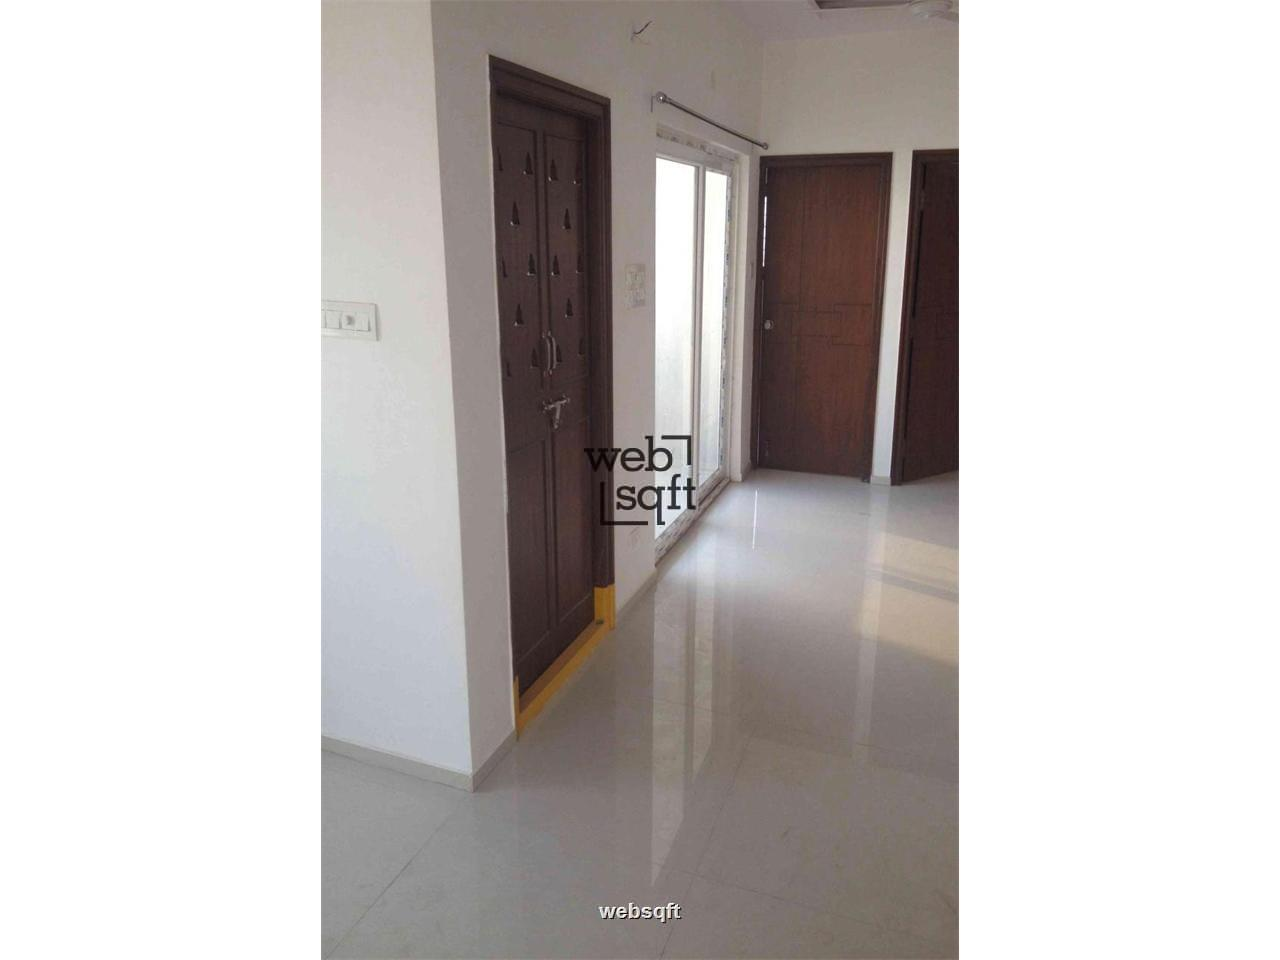 Websqft - Residential Apartment - Property for Rent - in 1800Sq-ft/Madhapur at Rs 41400